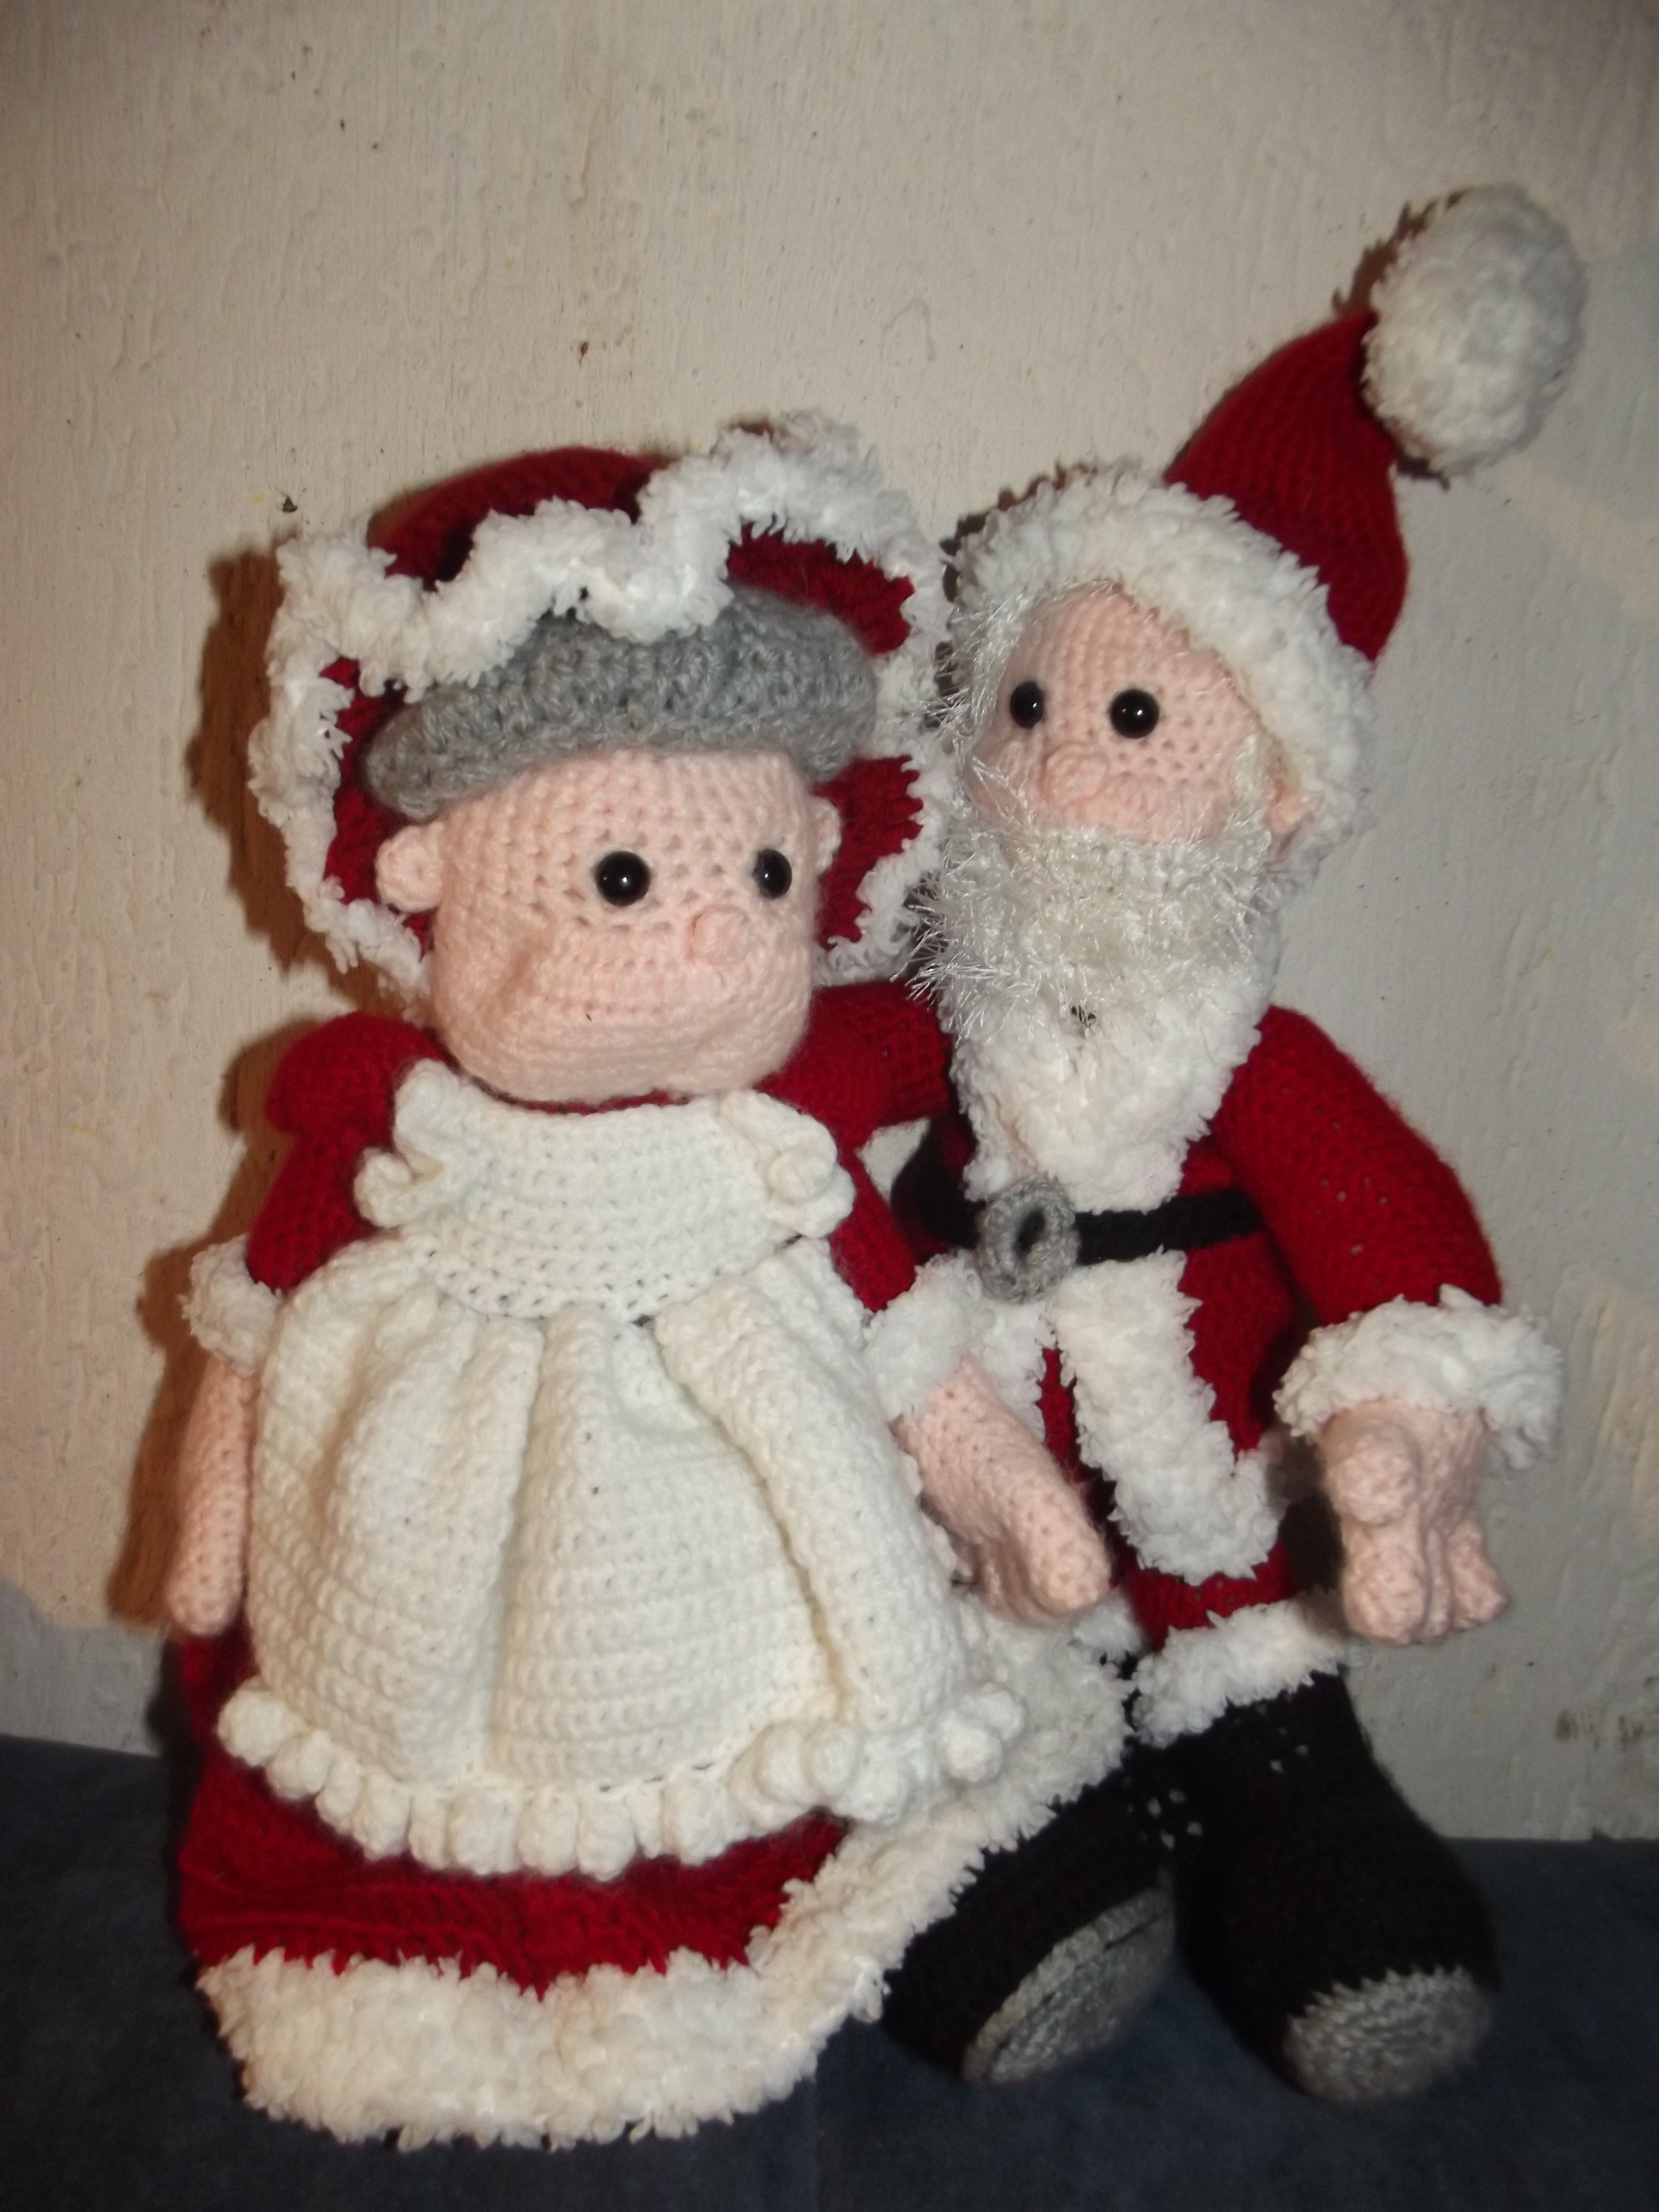 Mr. & Mrs. Santa Claus